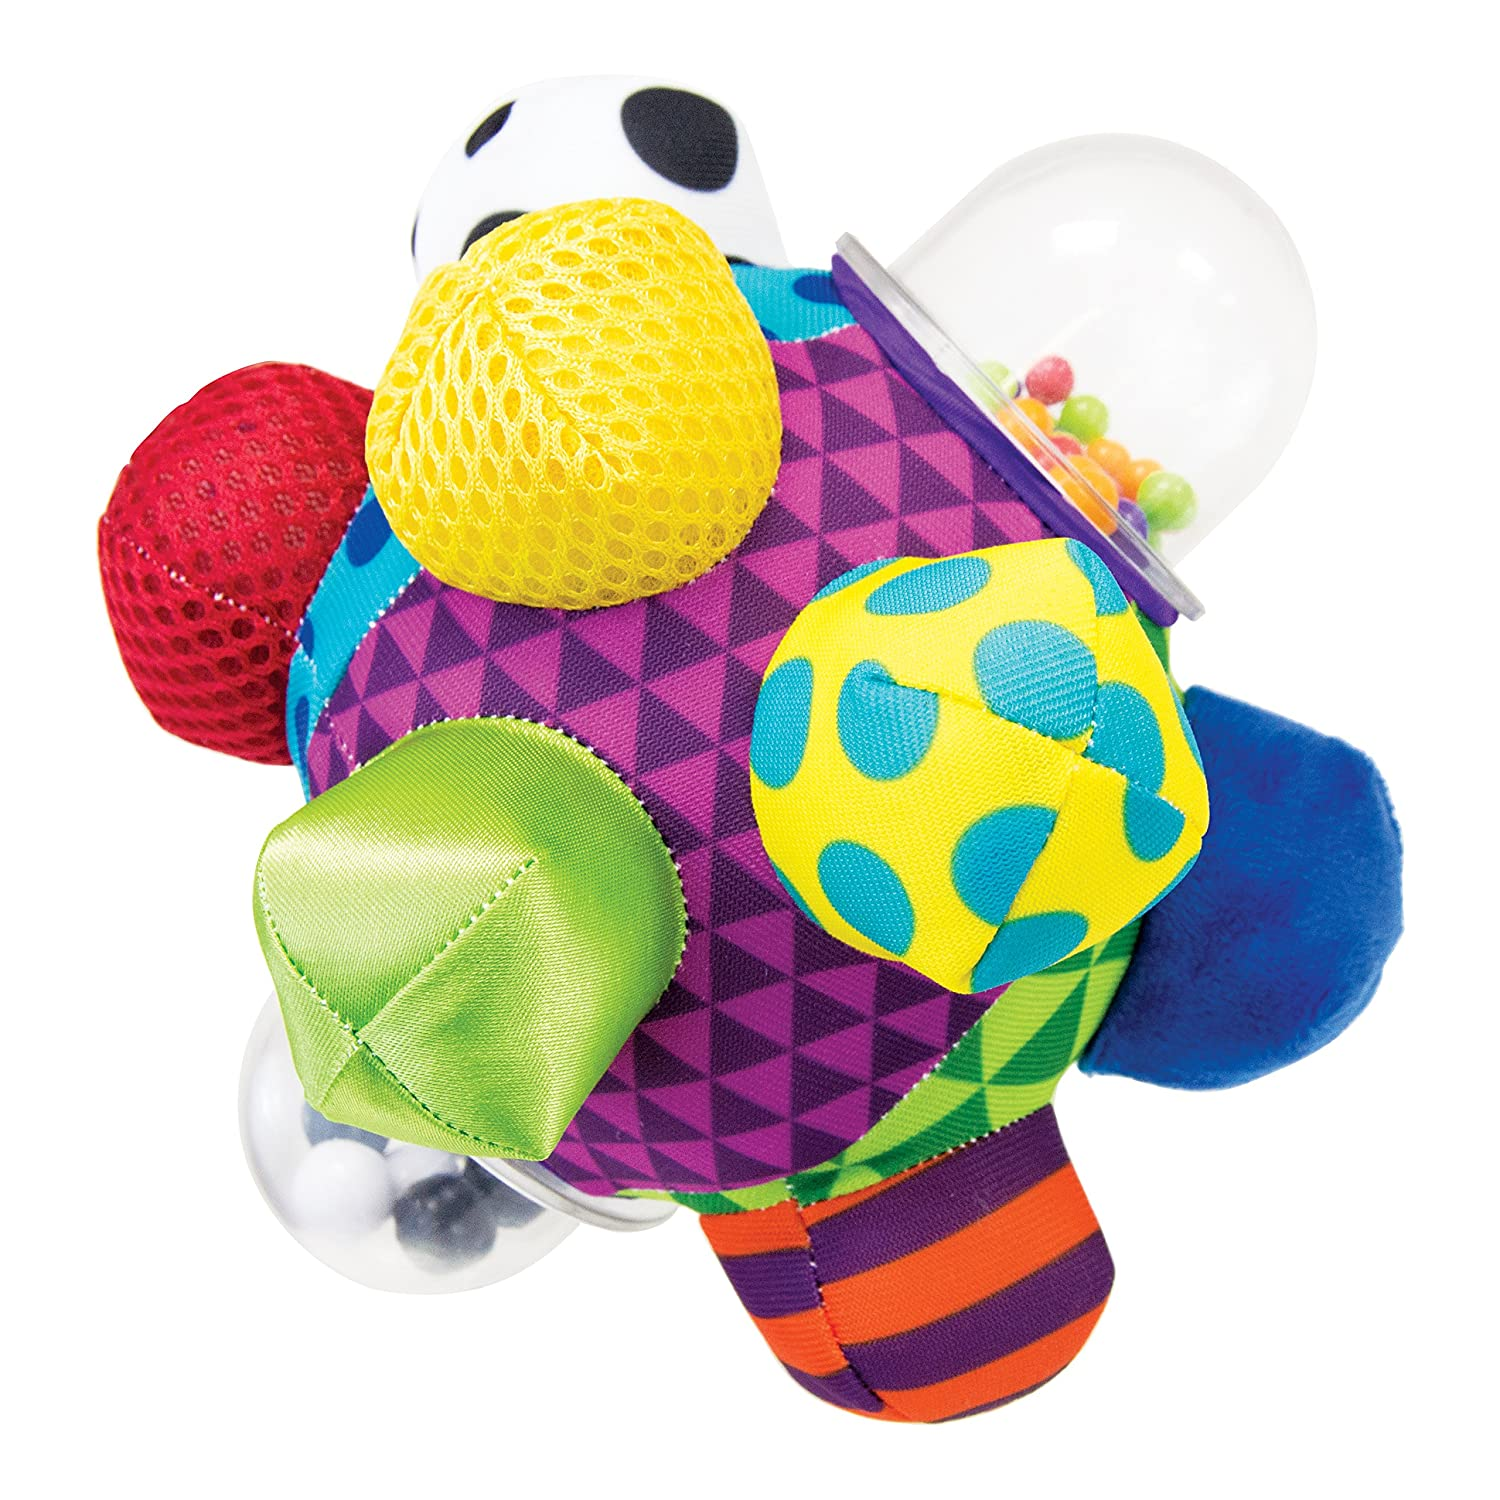 development ball best toys for 1 year old boys